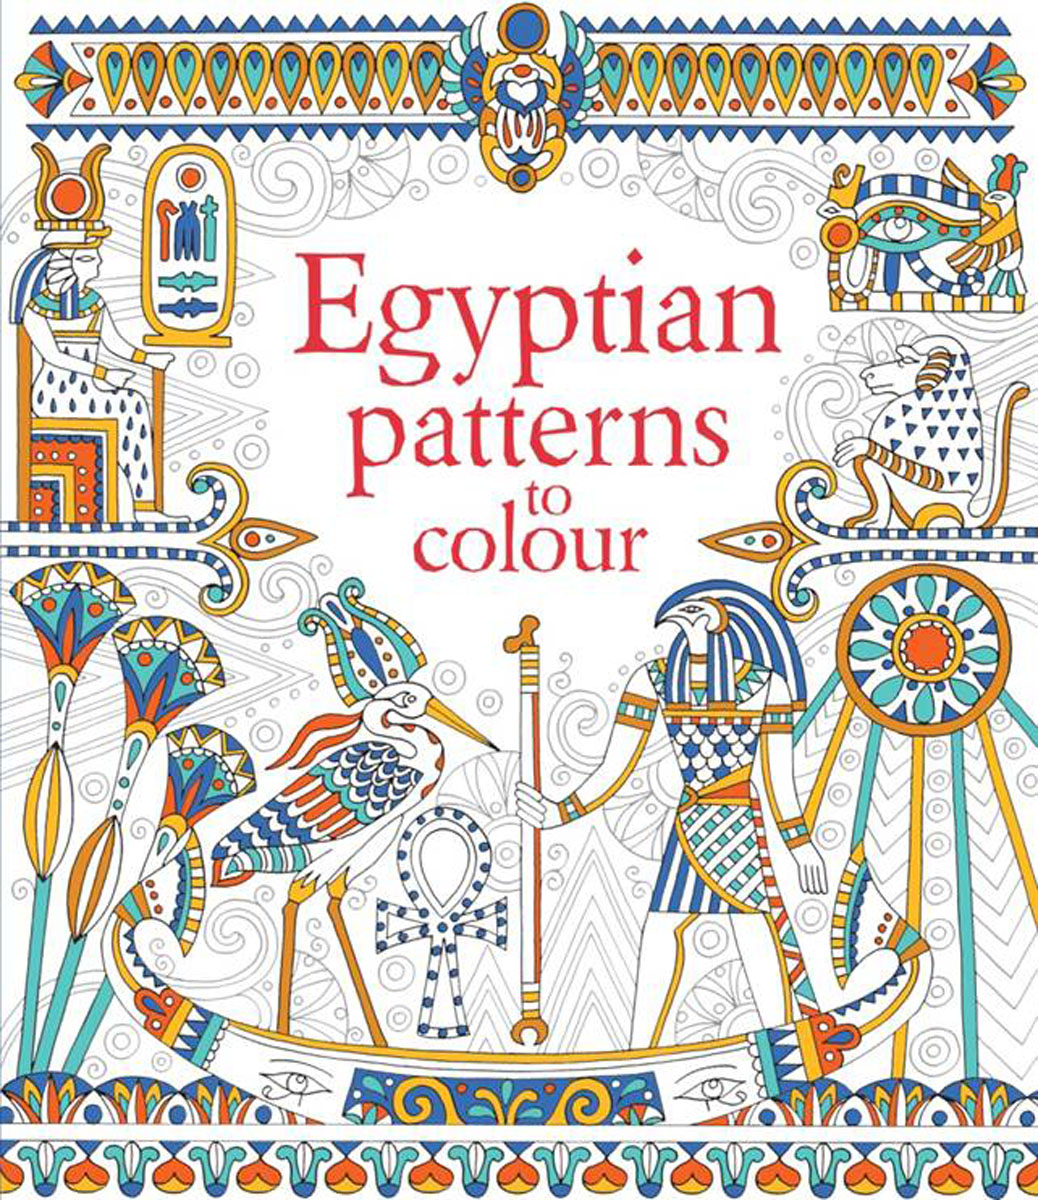 Egyptian Patterns to Colour folk art patterns to colour